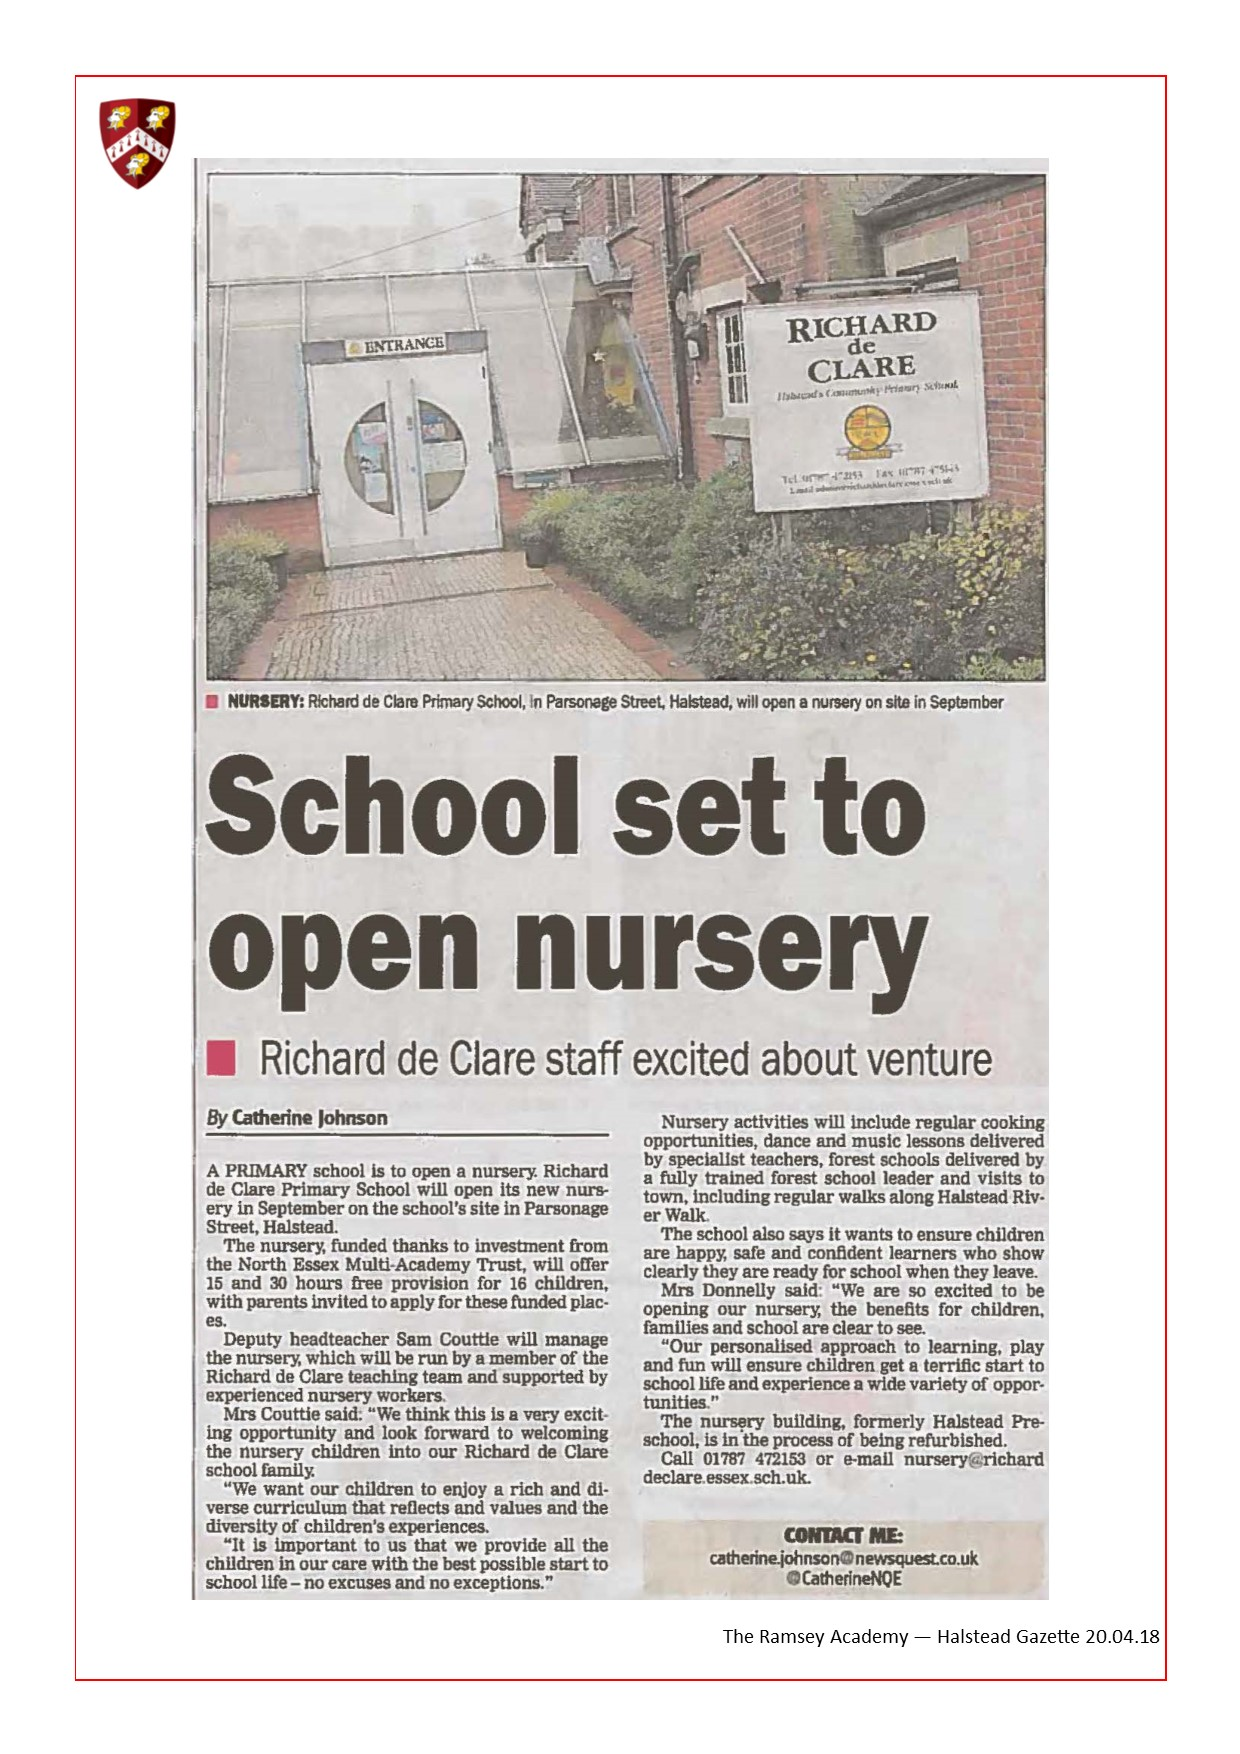 School Set To Open Nursery 20.04.18